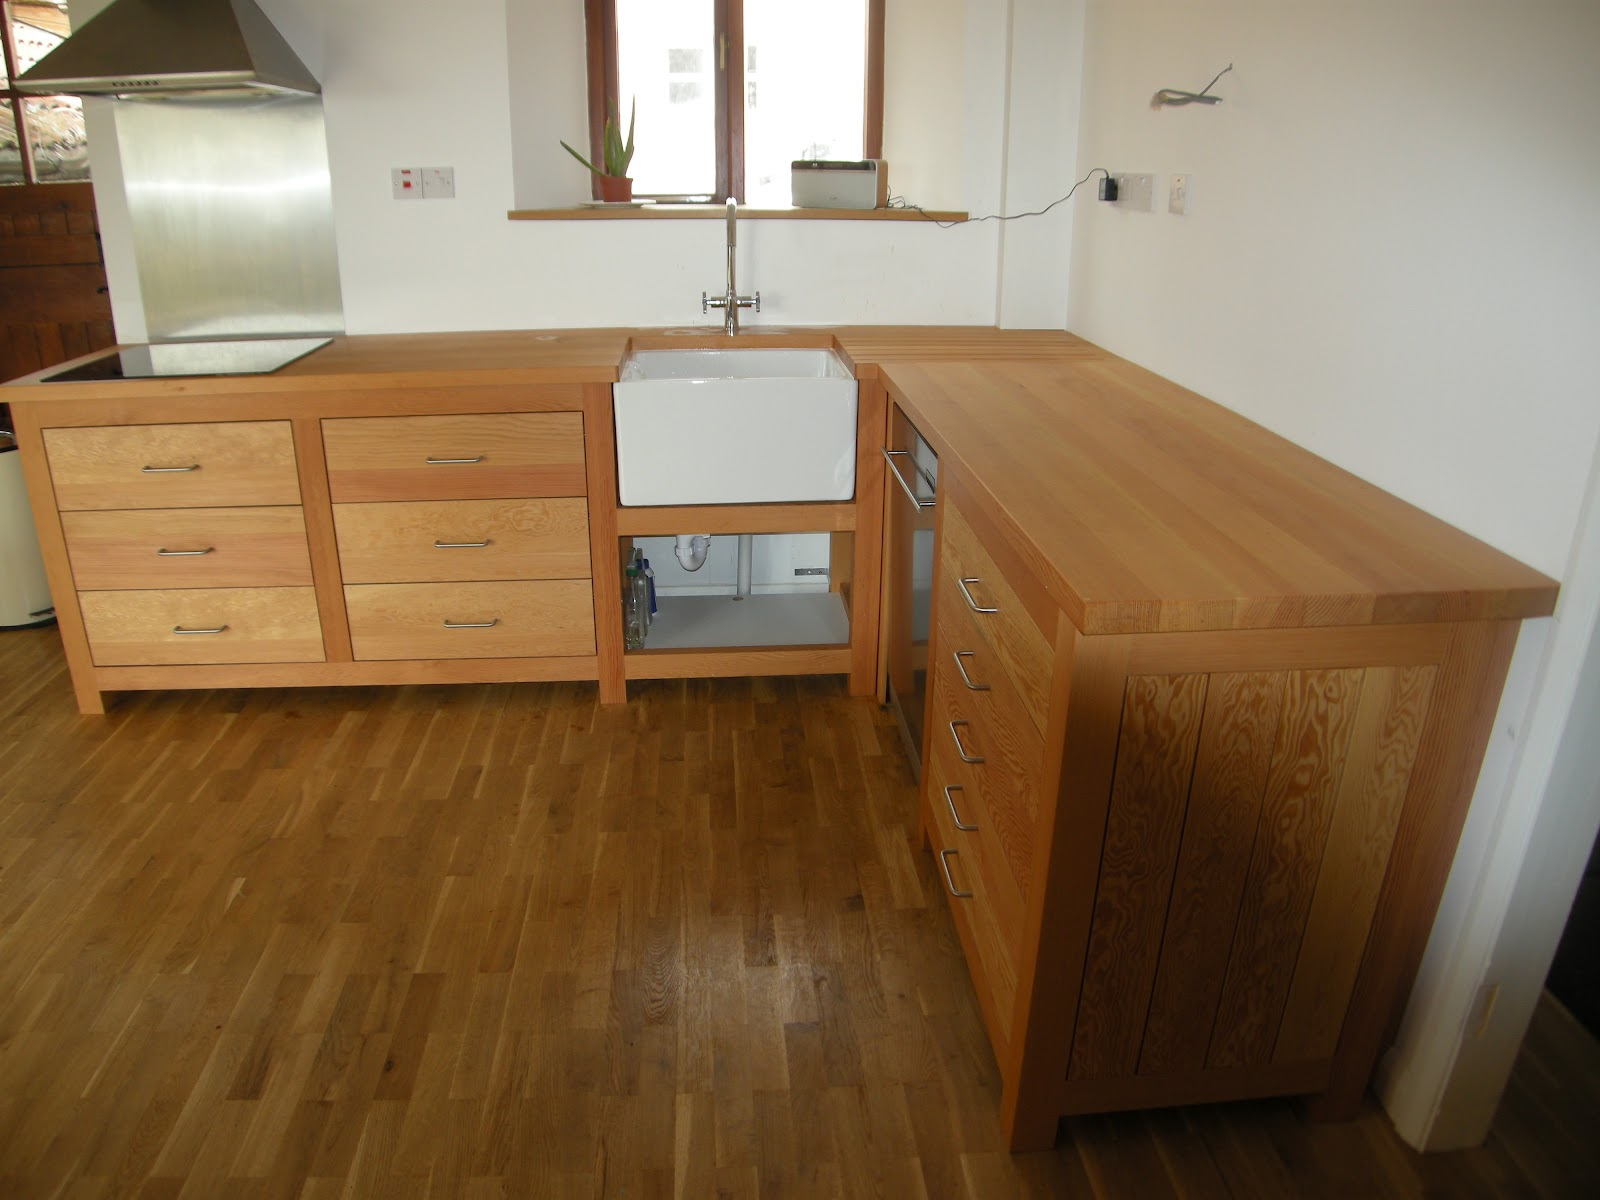 squirrel brand joinery free standing kitchen units